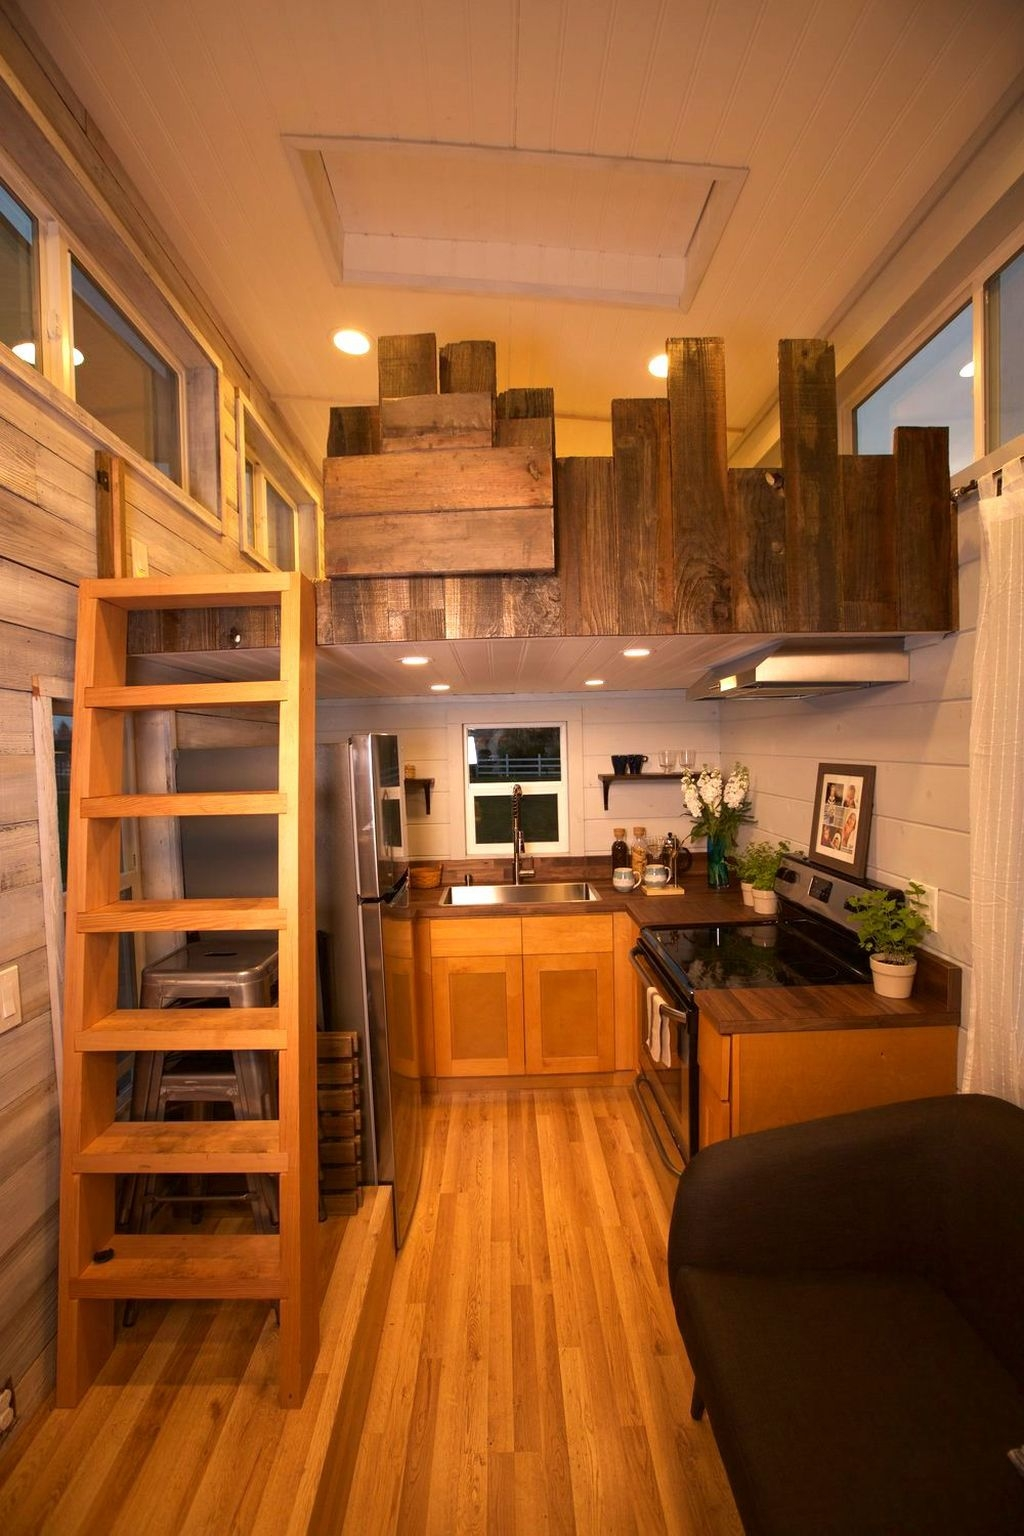 Rustic Tiny House Design Ideas With Two Beds41